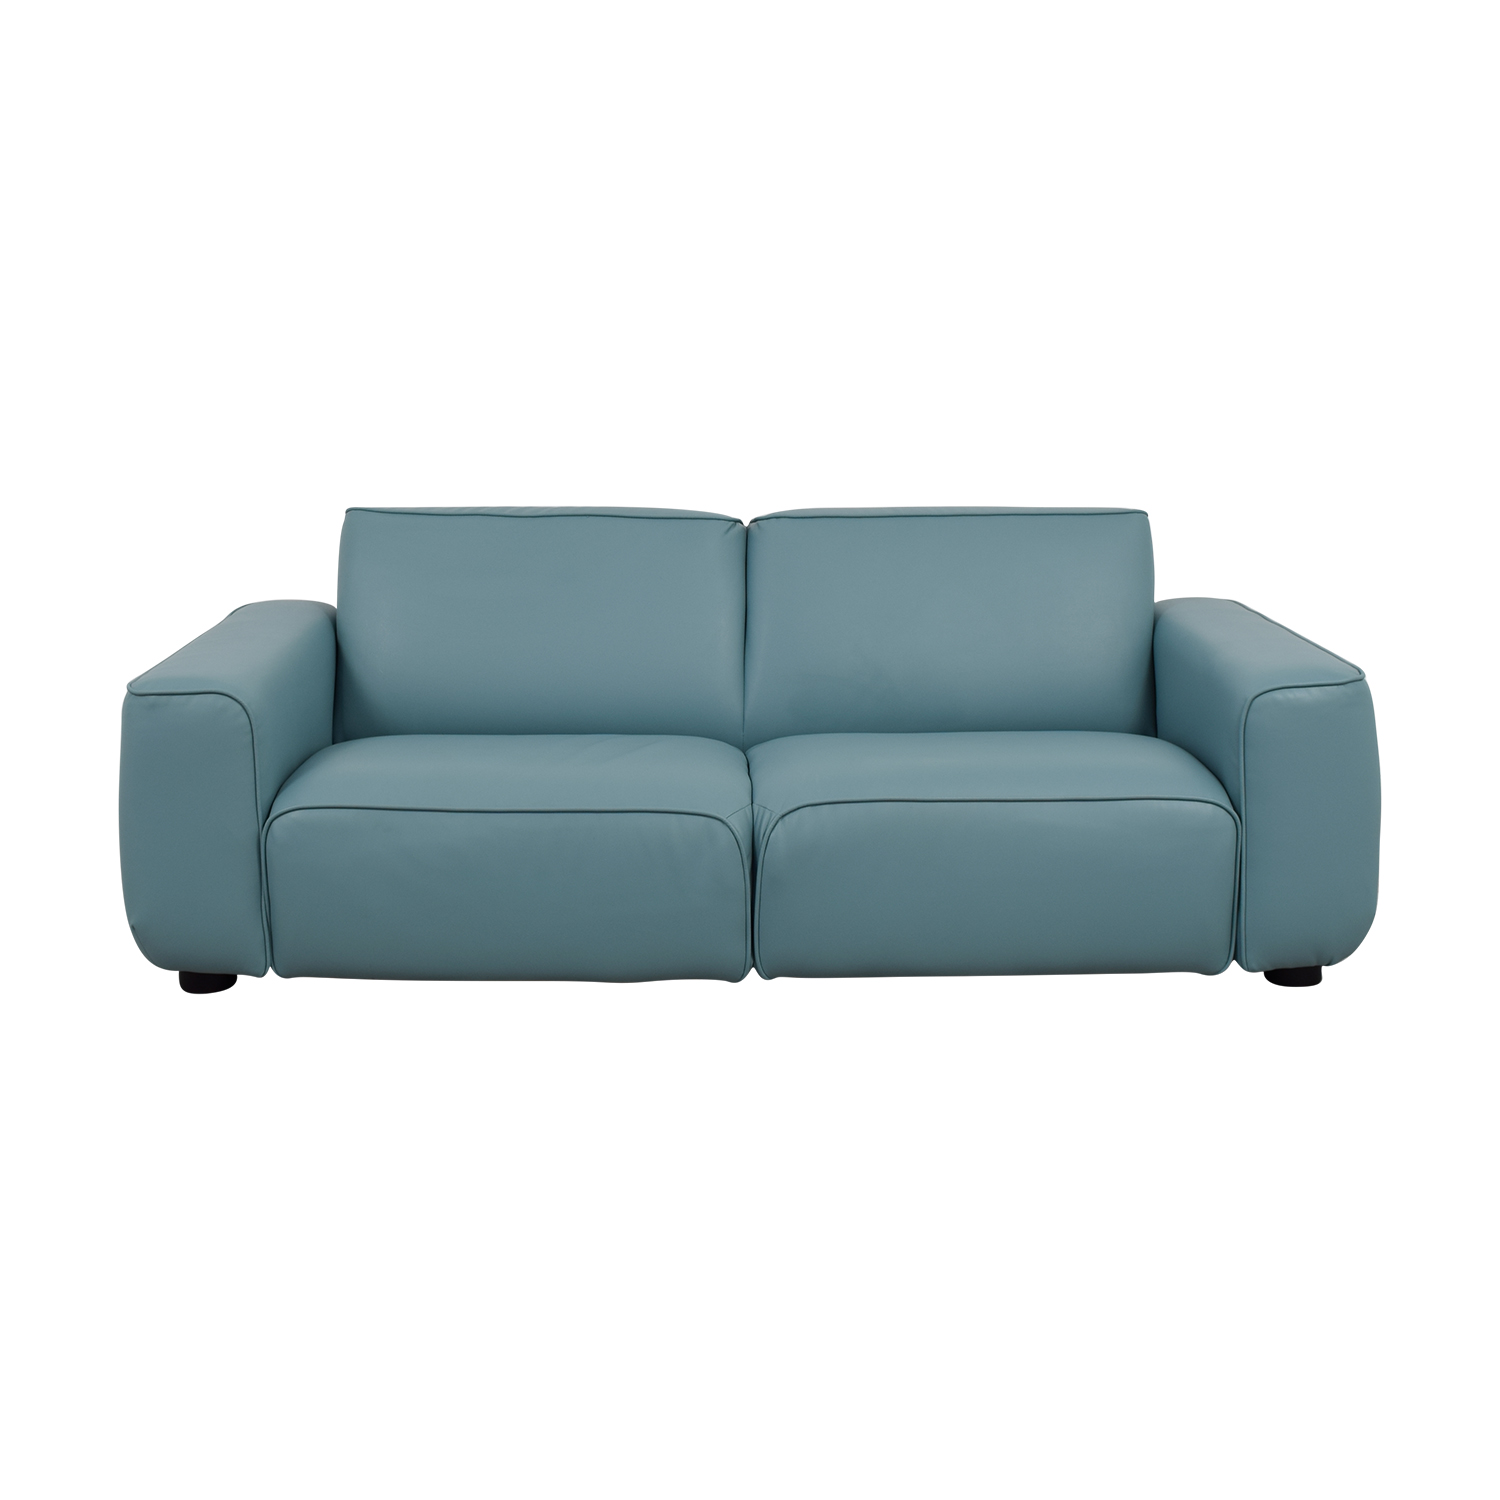 baby sofas and chairs linen cotton blend sofa ikea loveseat the ultimate klippan